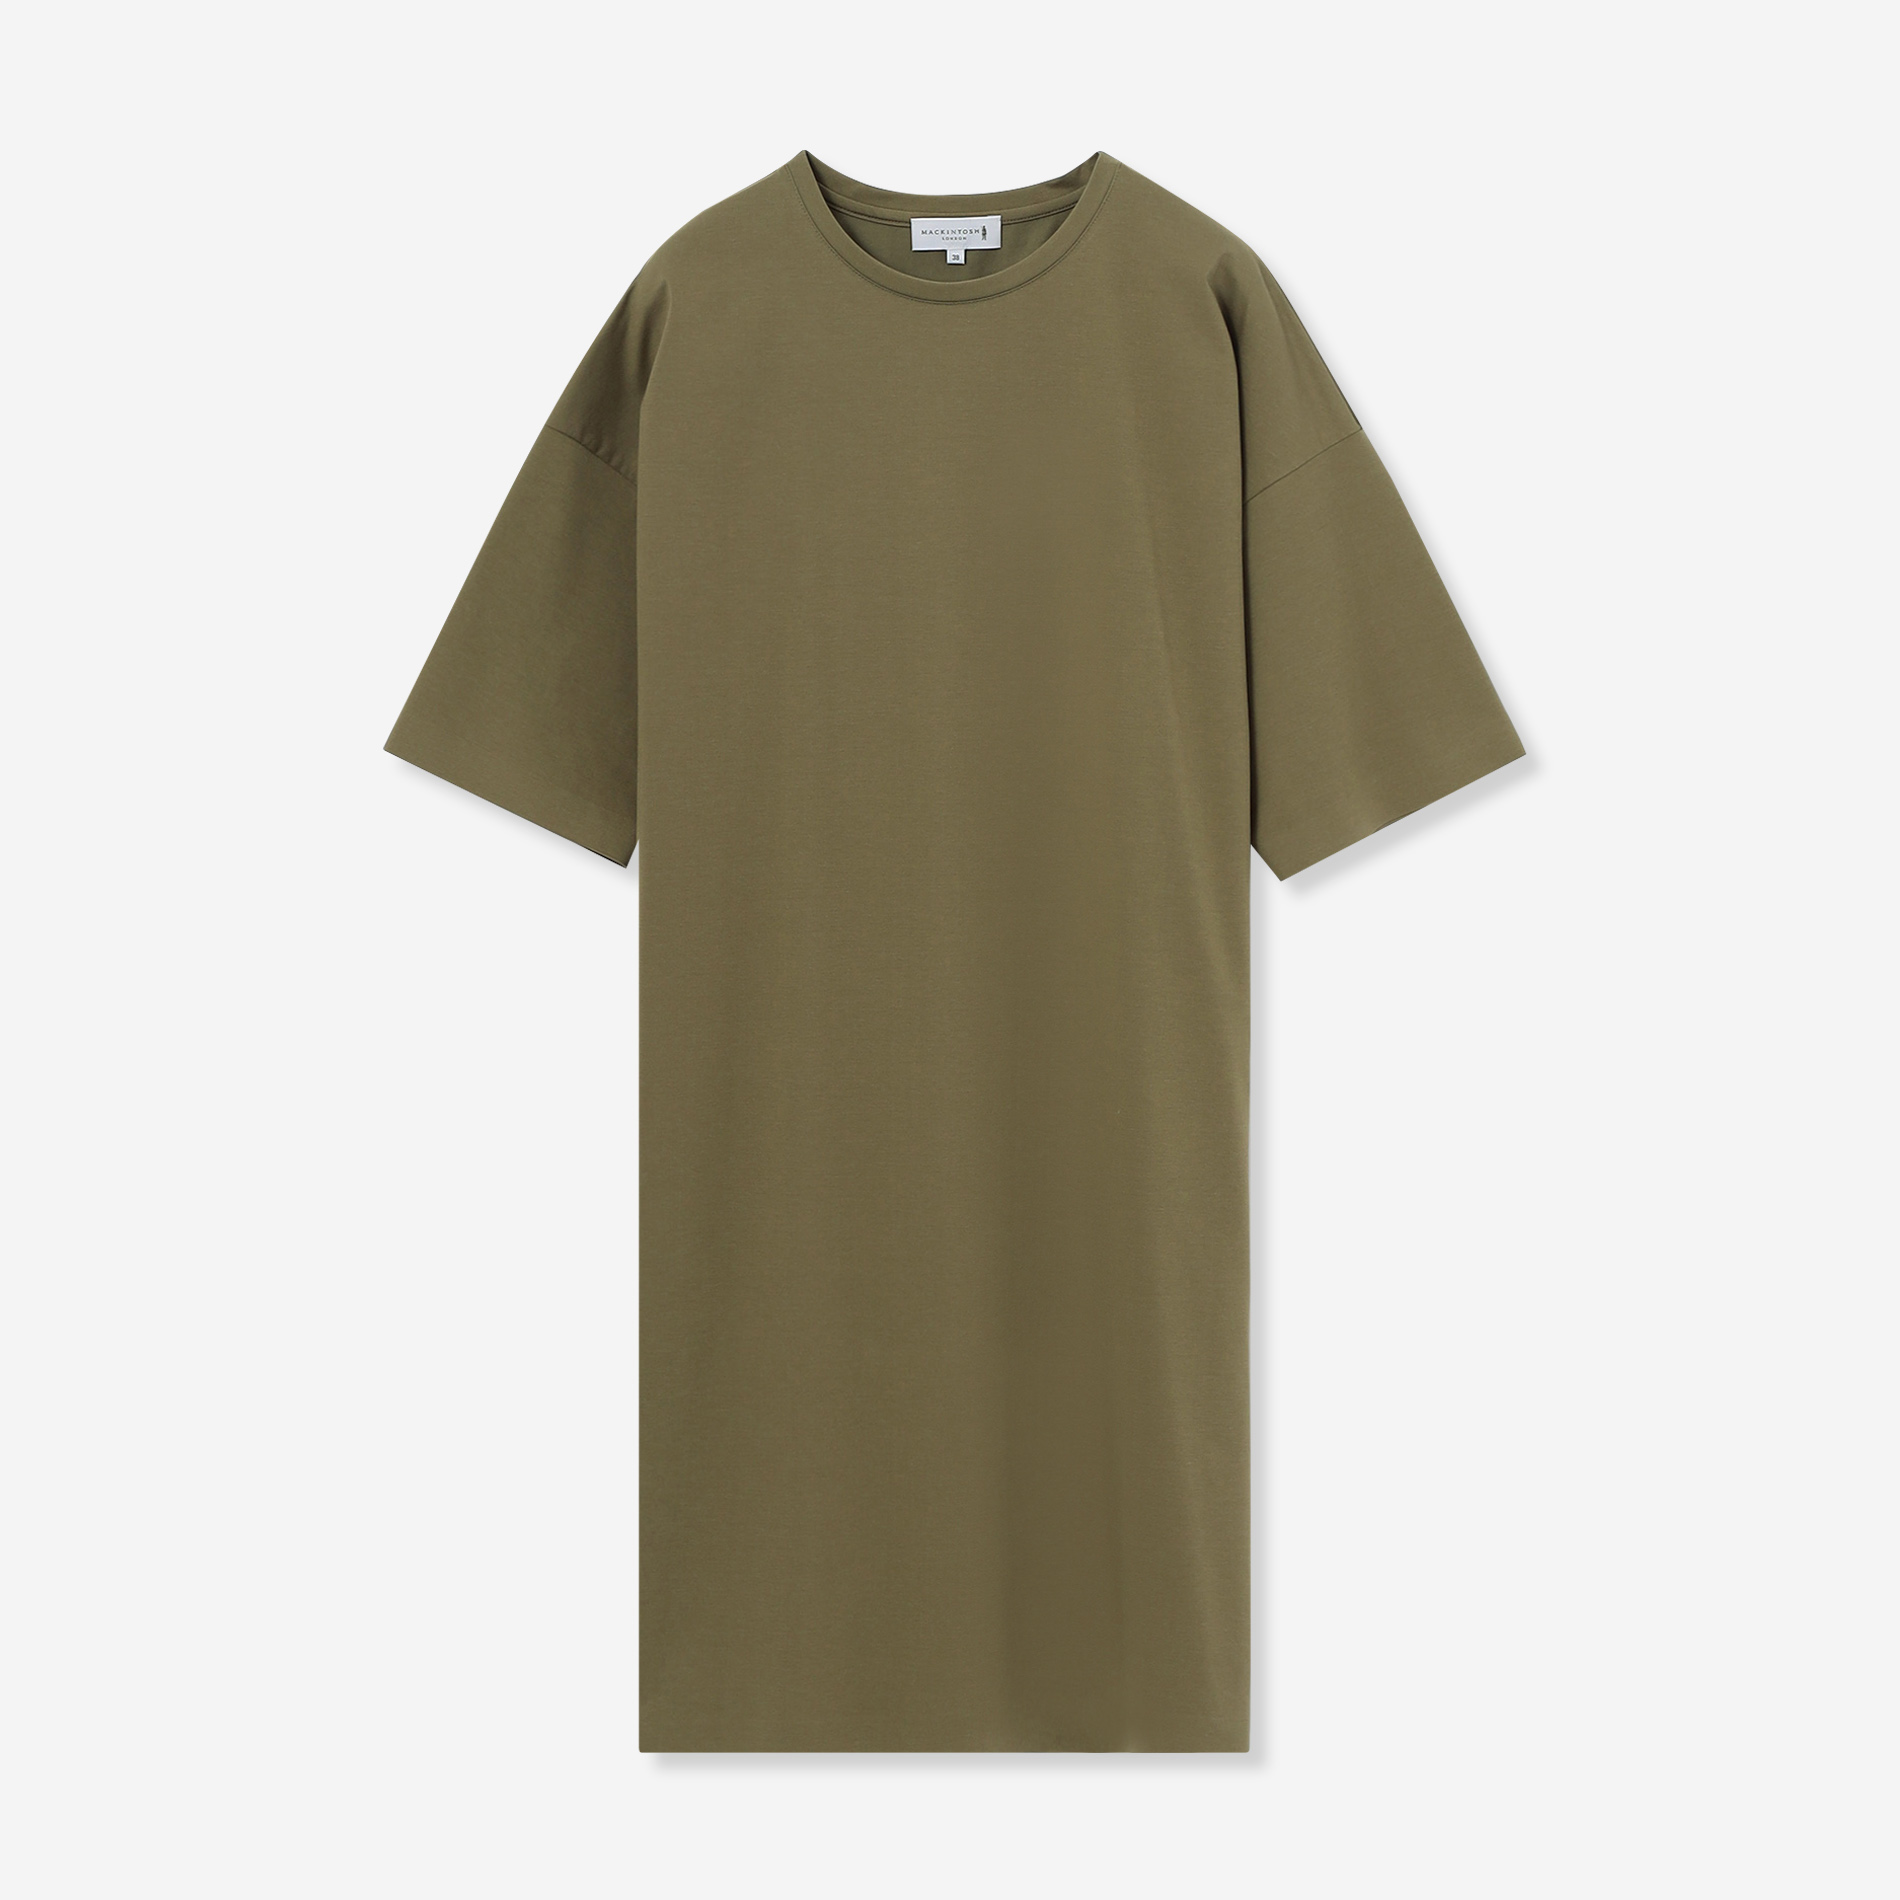 ◆◆【The Essential Collection】プレーティング天竺チュニックTシャツ